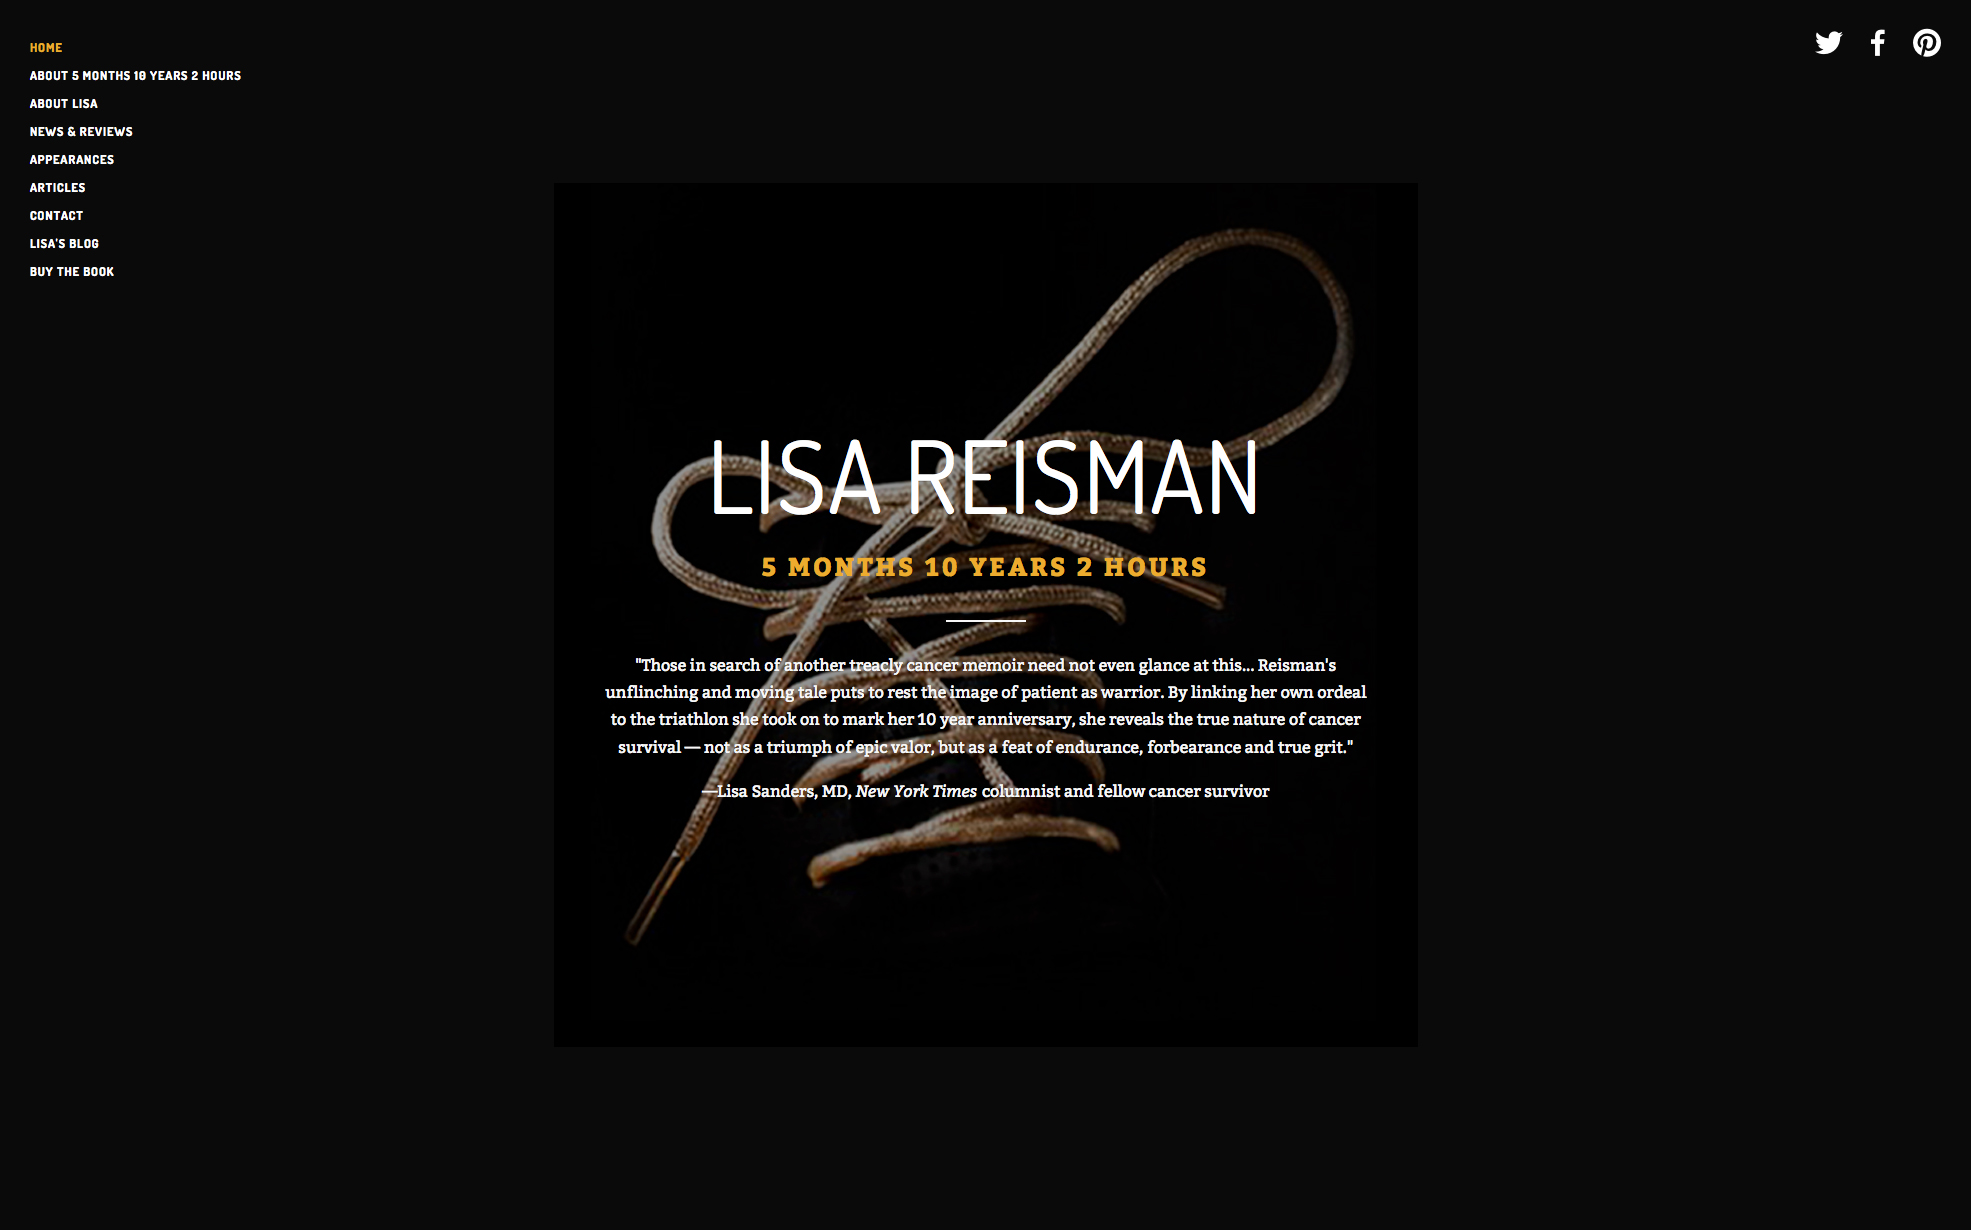 Website for Lisa Reisman, journalist and author of 5 Months 10 Years 2 Hours